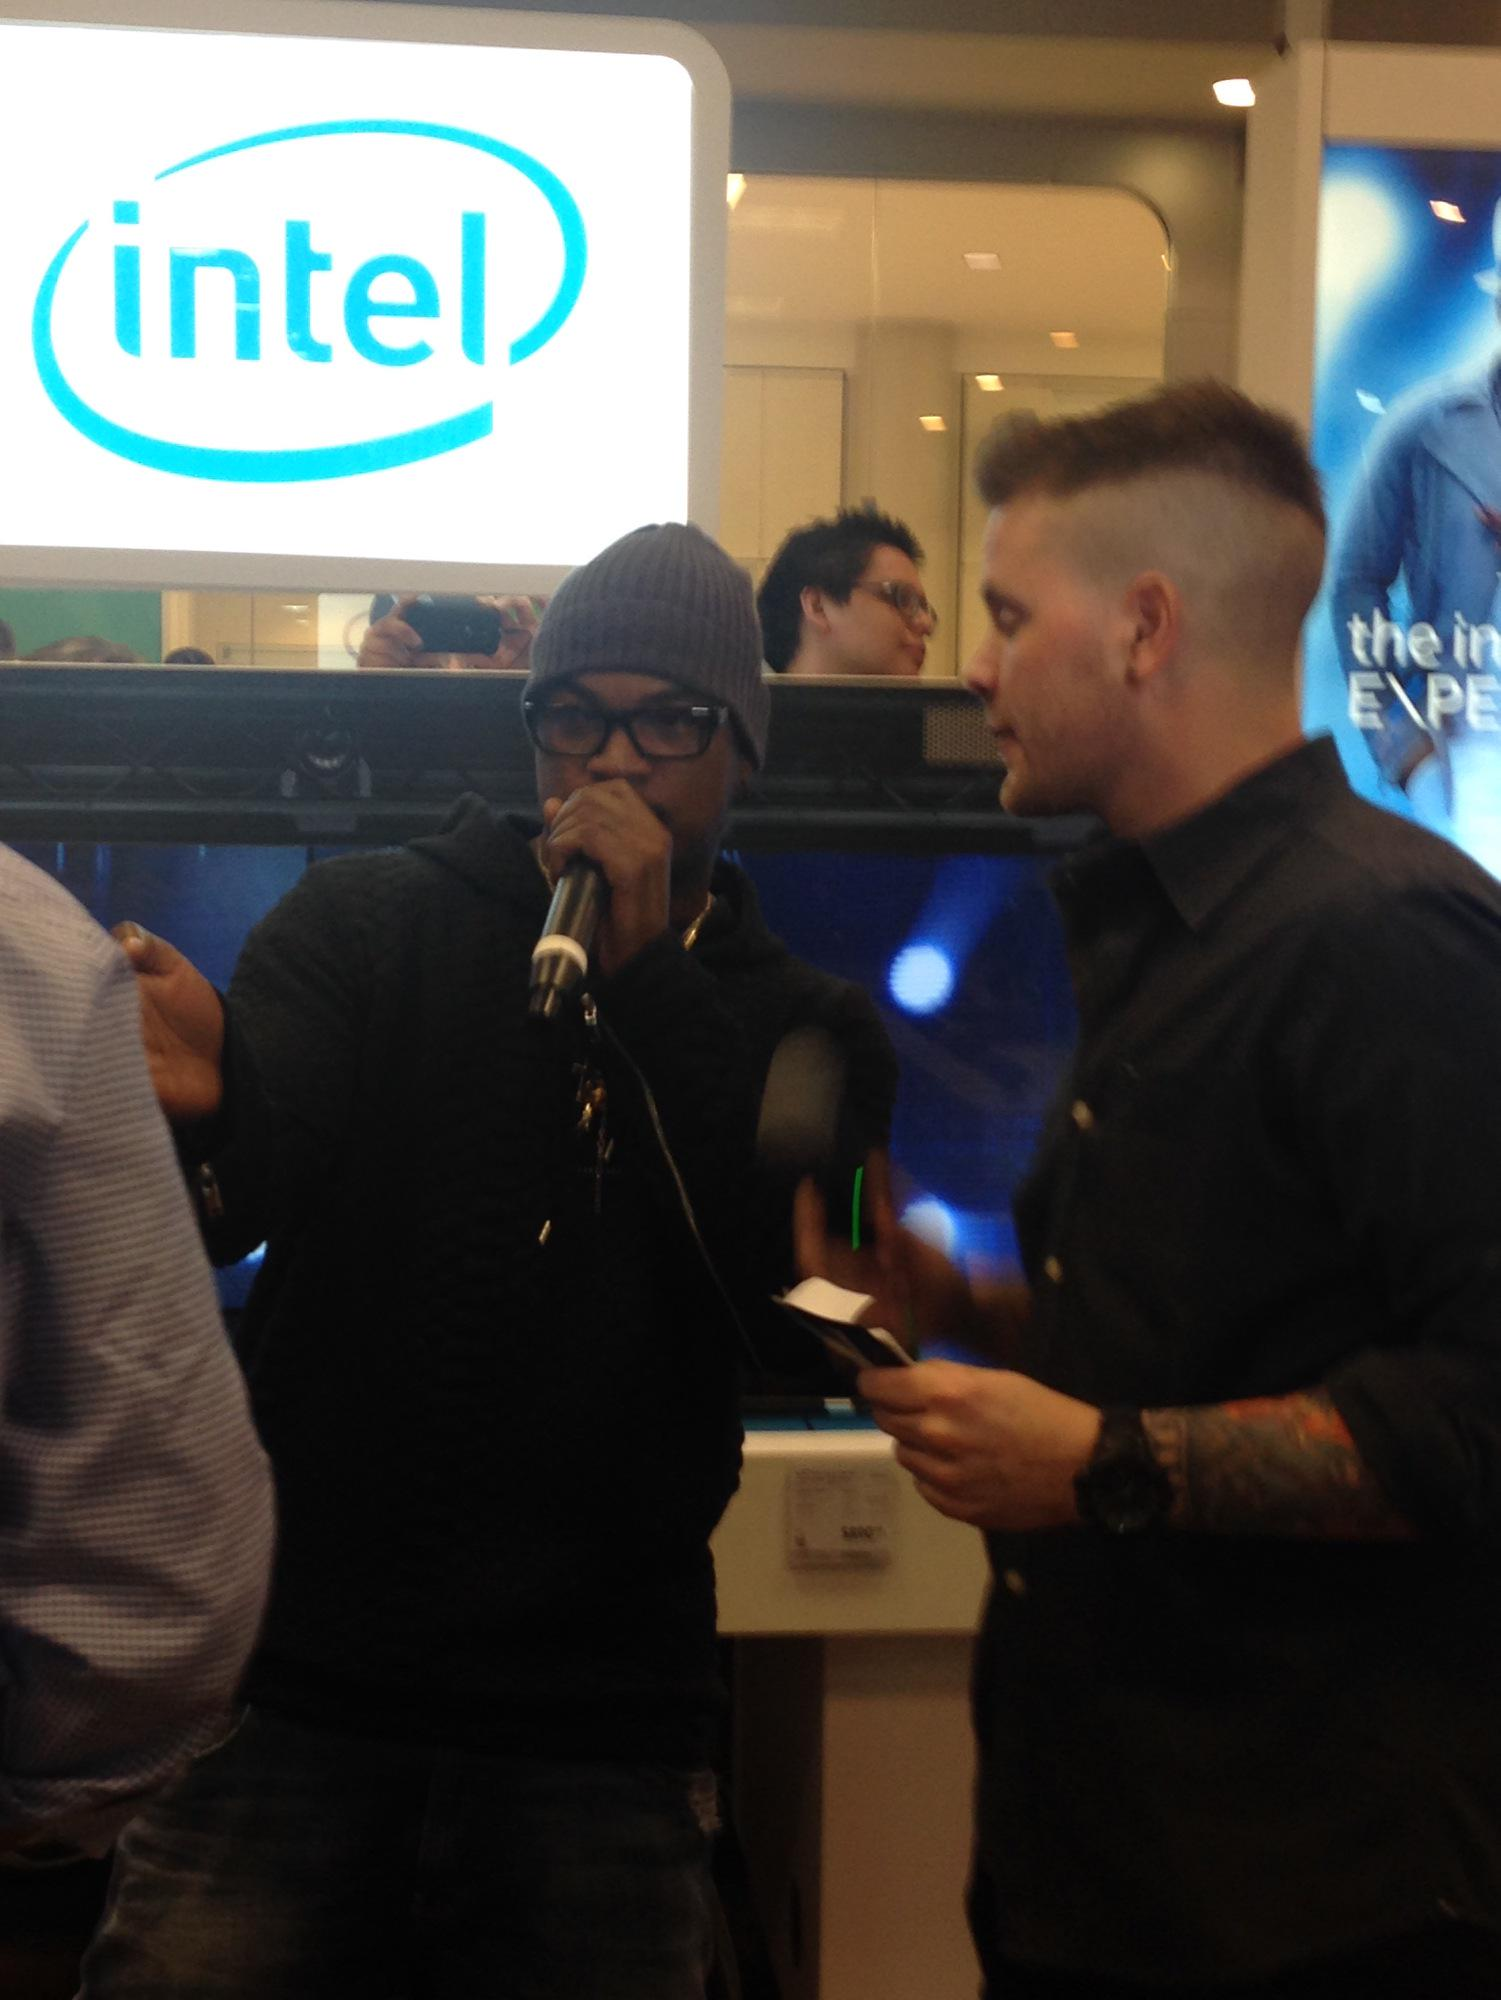 RT @BestBuy: @NeYoCompound is at the @BestBuy in the Mall of America remixing new songs at the @Intel In Store Experience. http://t.co/jFpJ…